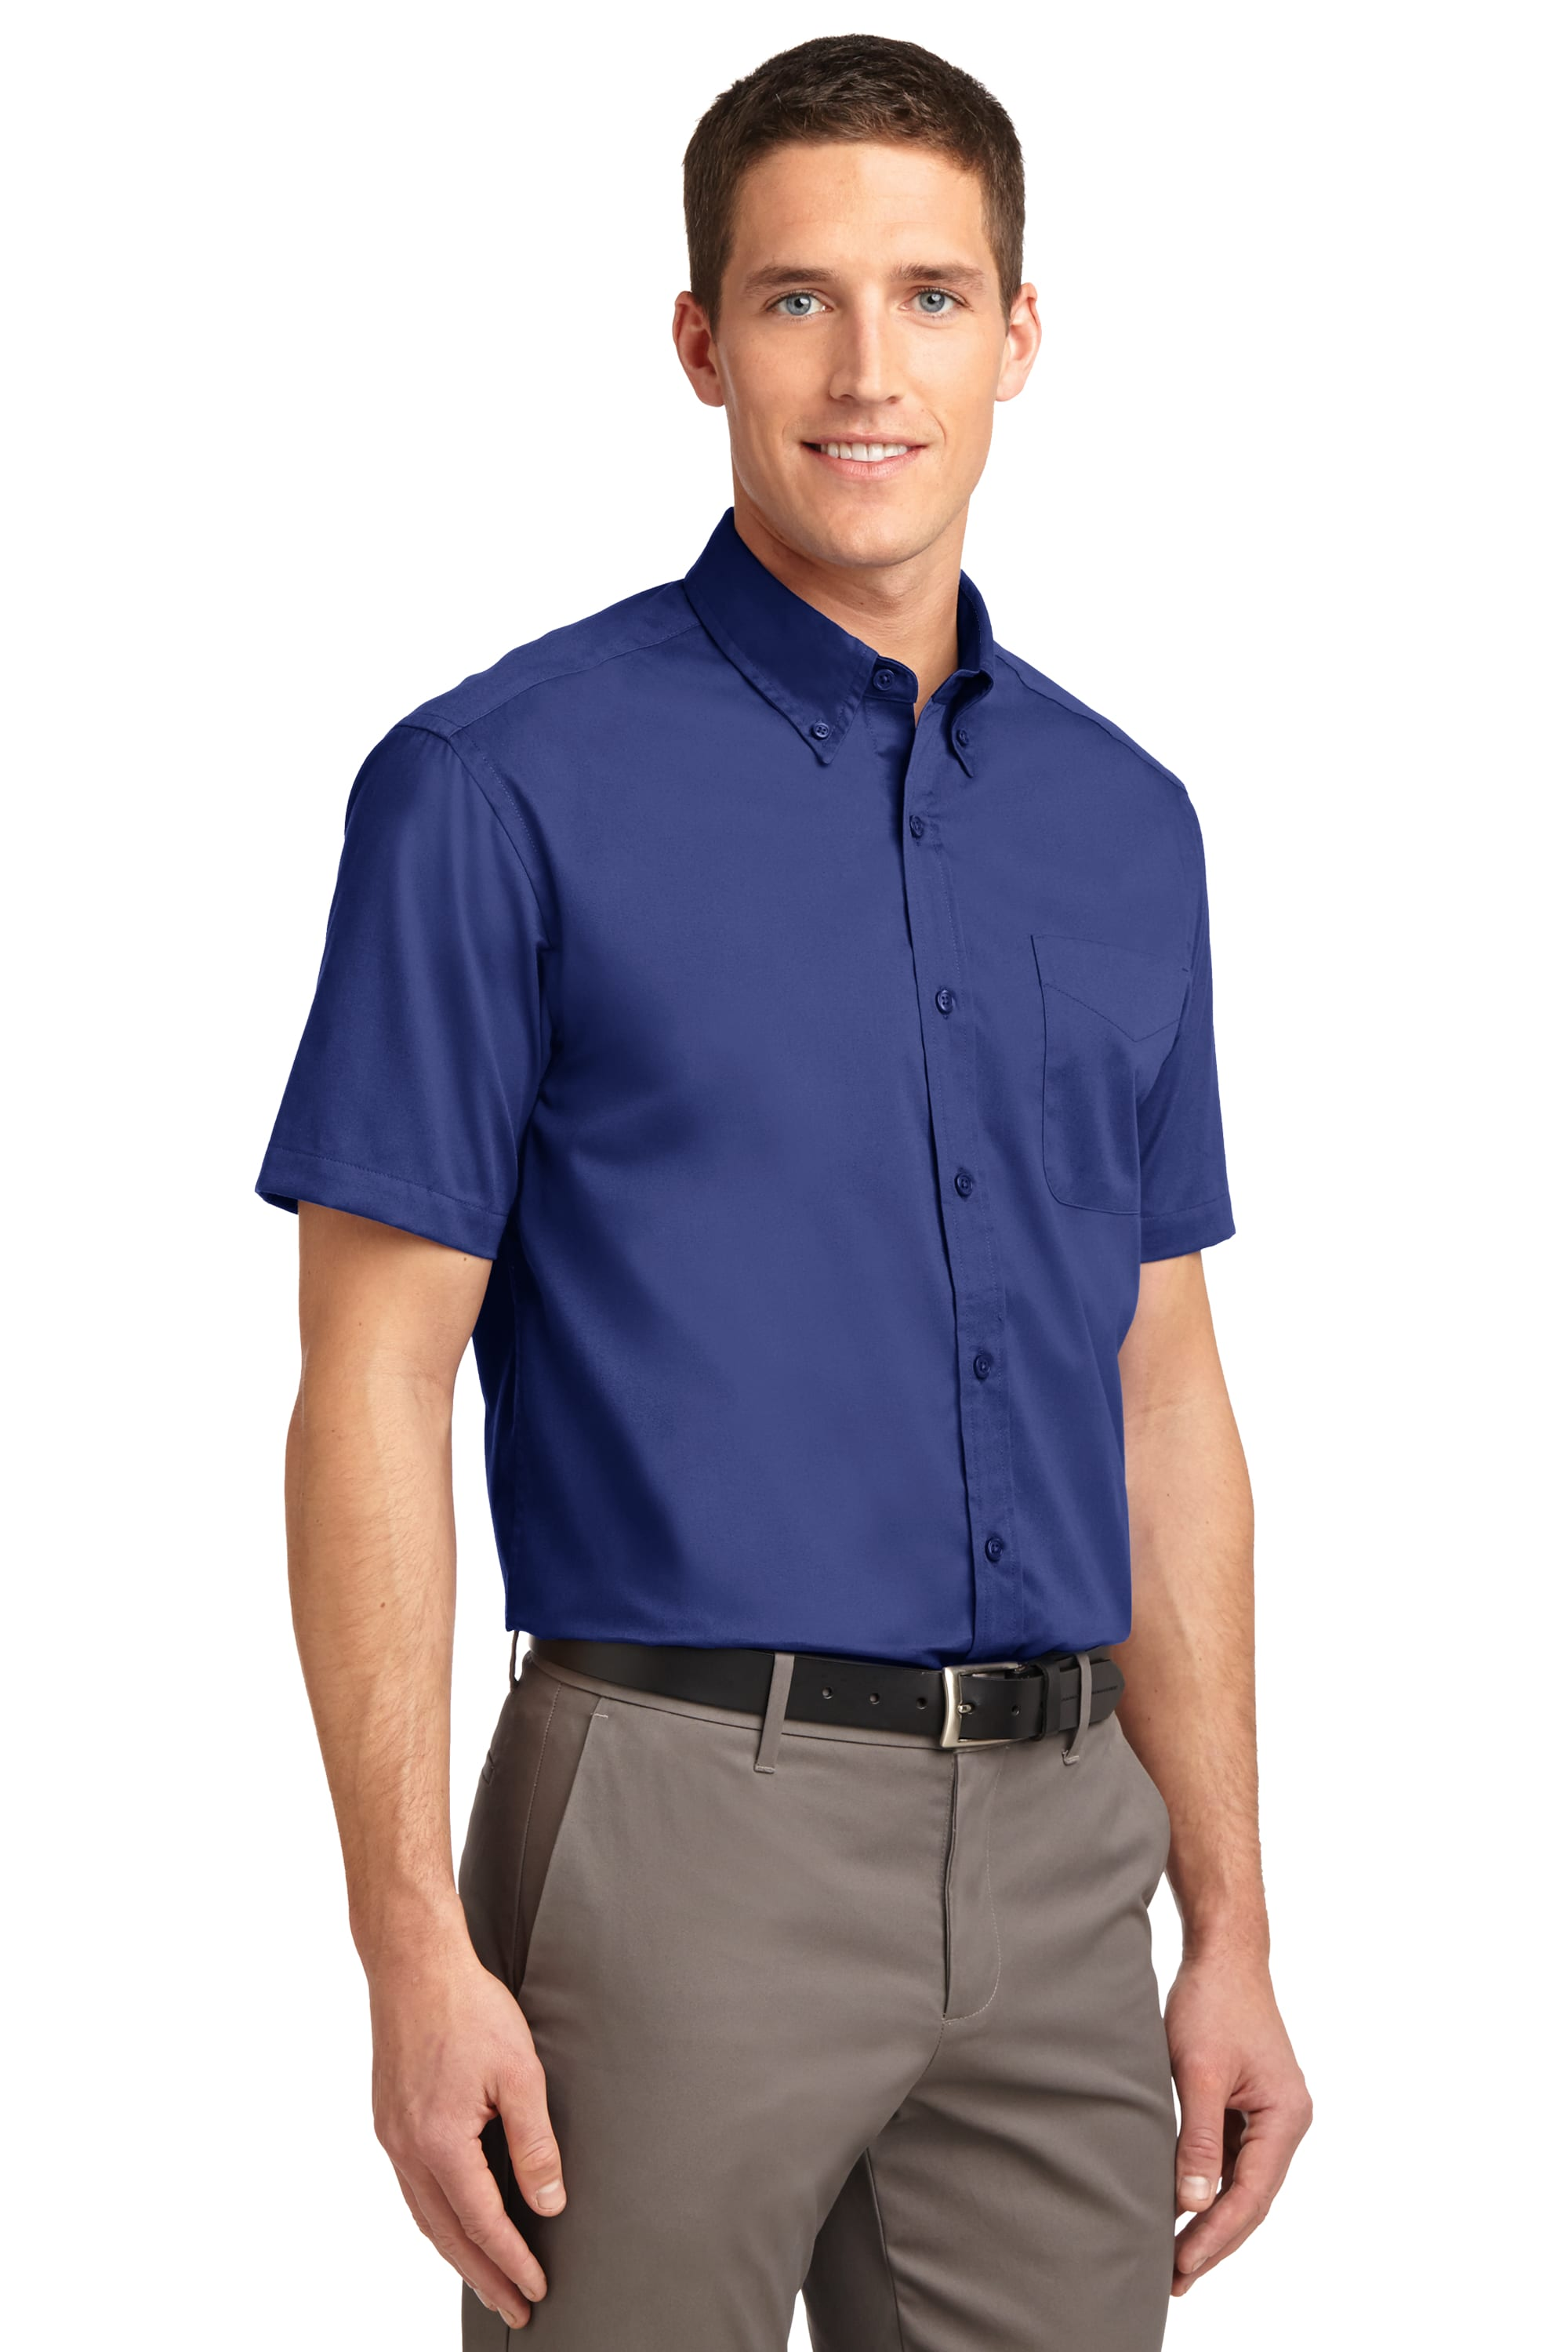 Port Authority Short Sleeve Easy Care Shirt S508 Classic Navy//Light Stone